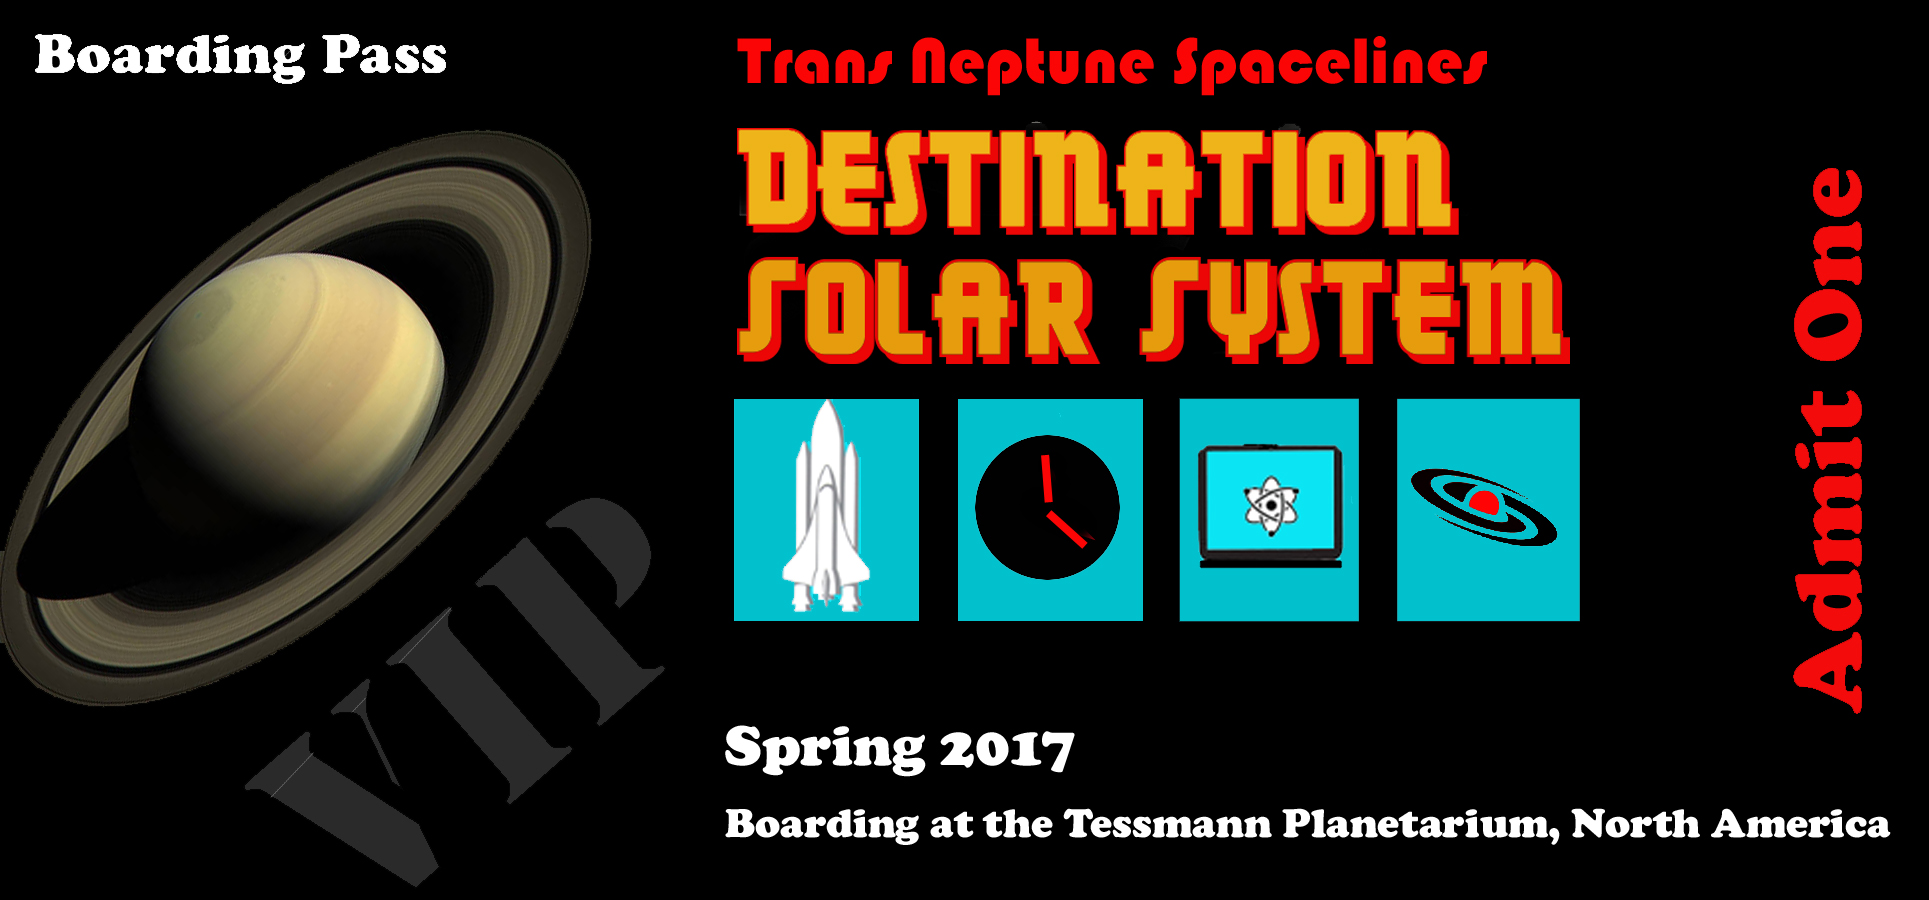 destination solar system card 1.jpg